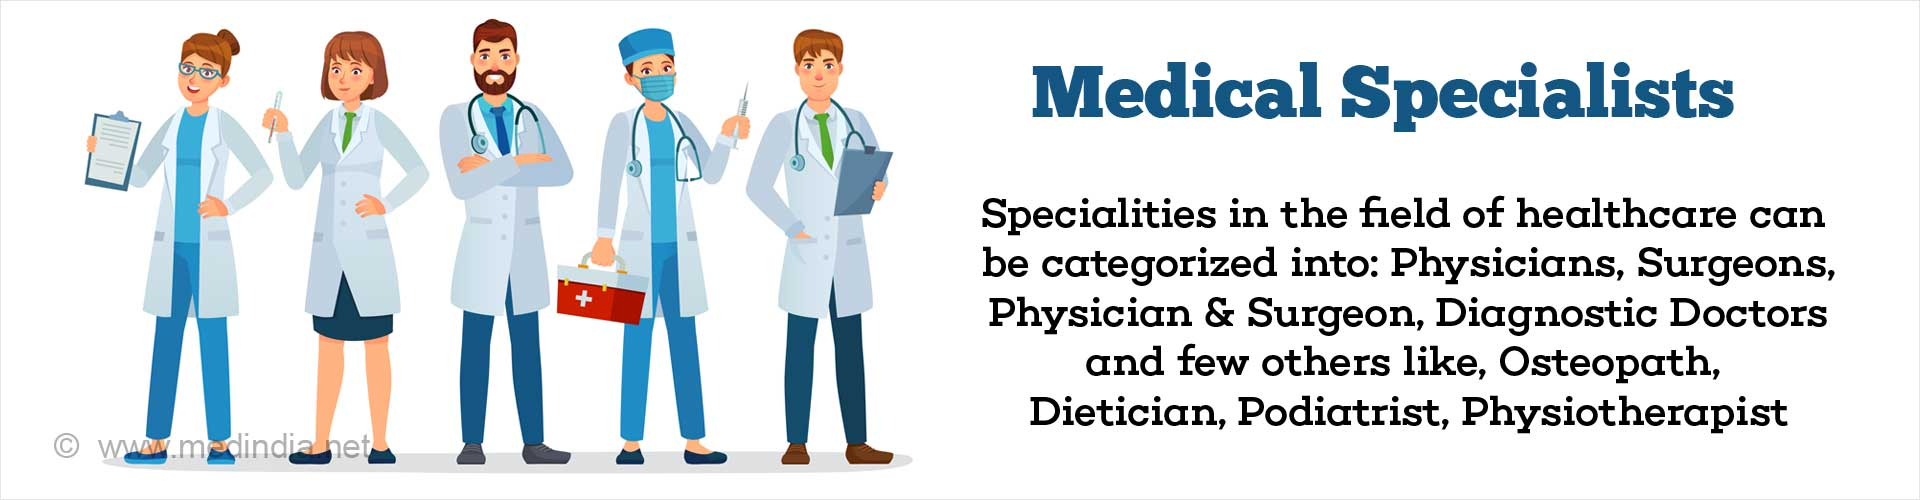 Medical Specialists and What They Do